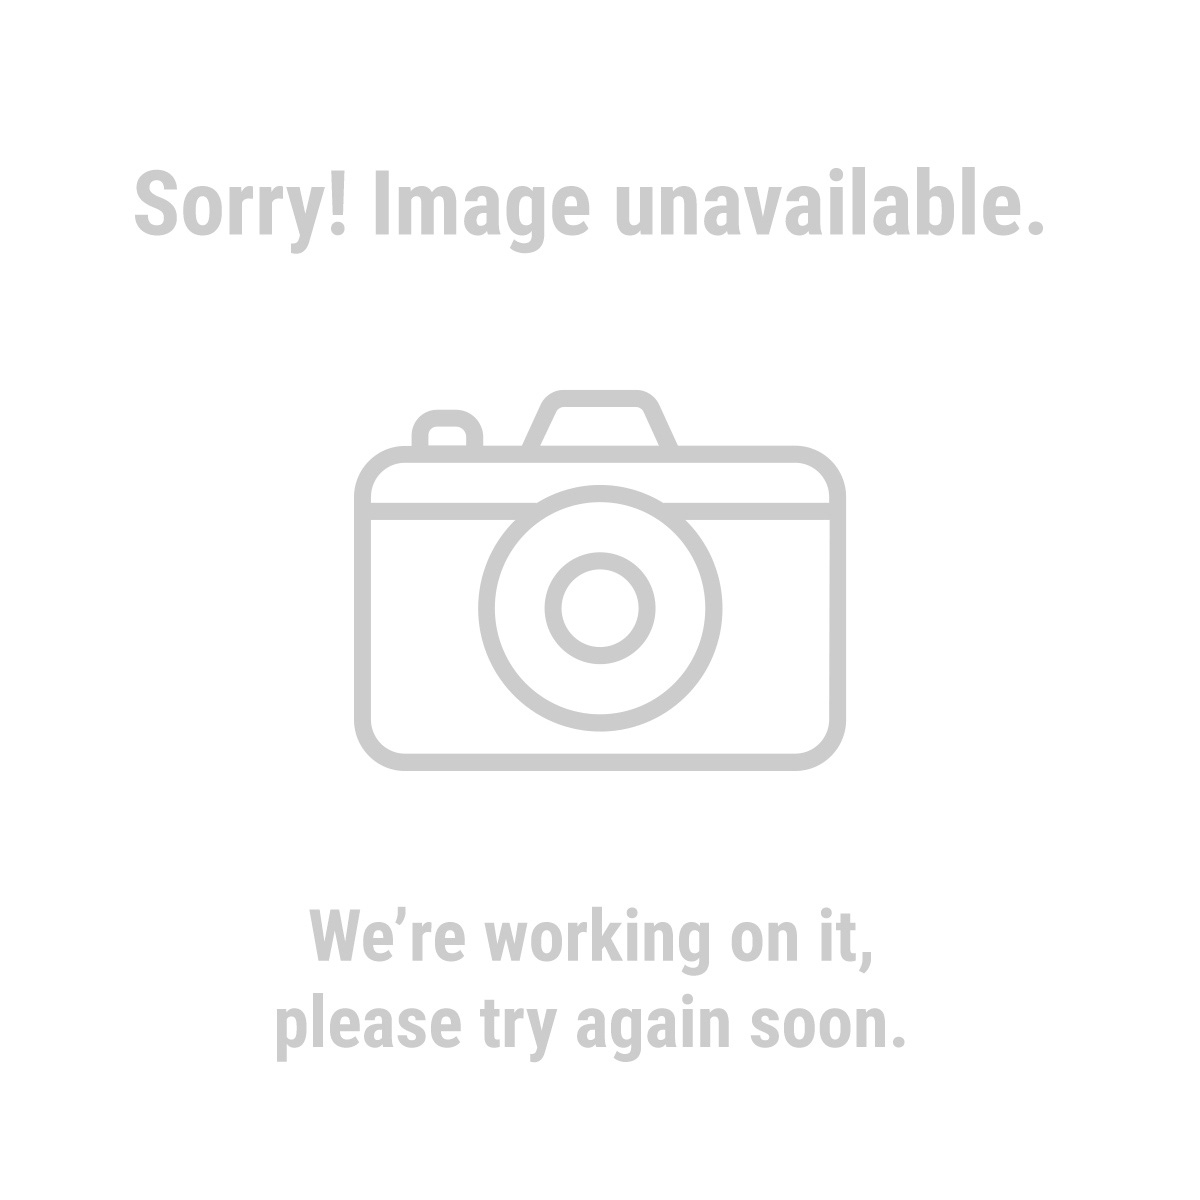 "Haul-Master 90984 4 Piece 1"" x 15 Ft. Ratcheting Tie Down Set"